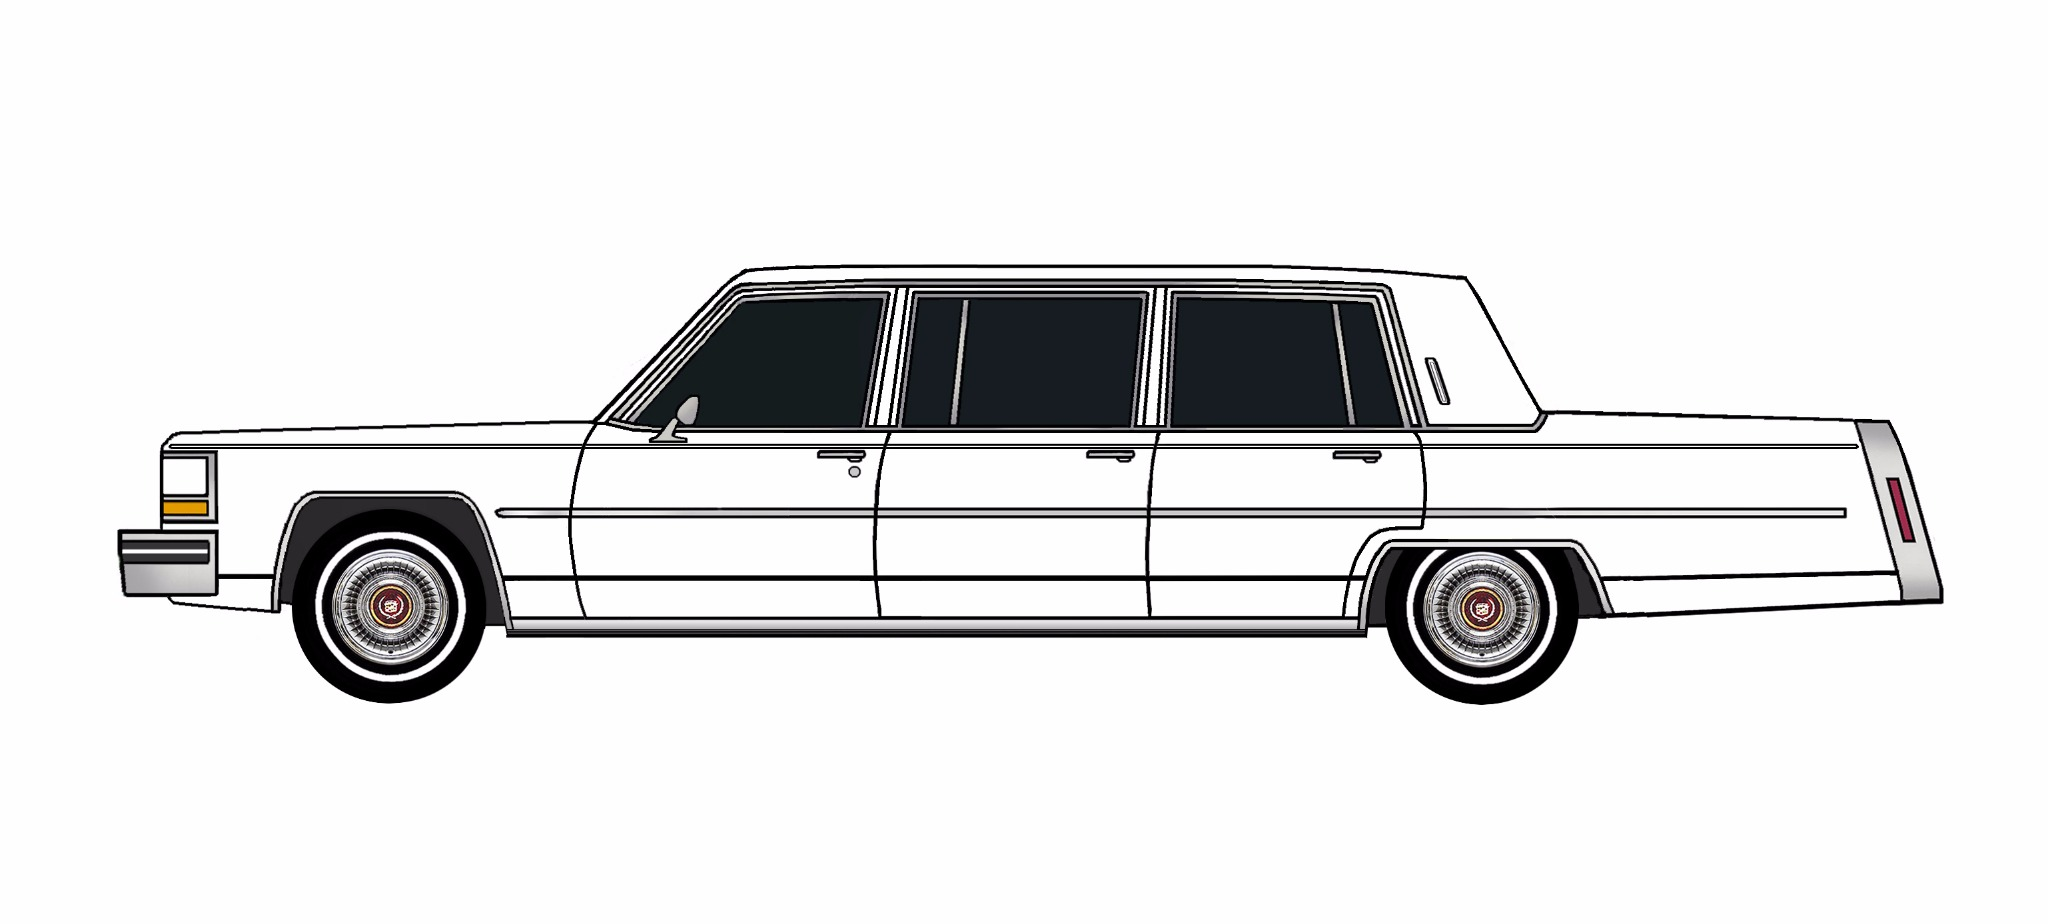 1981 Cadillac Fleetwood Funeral Limo WHITE